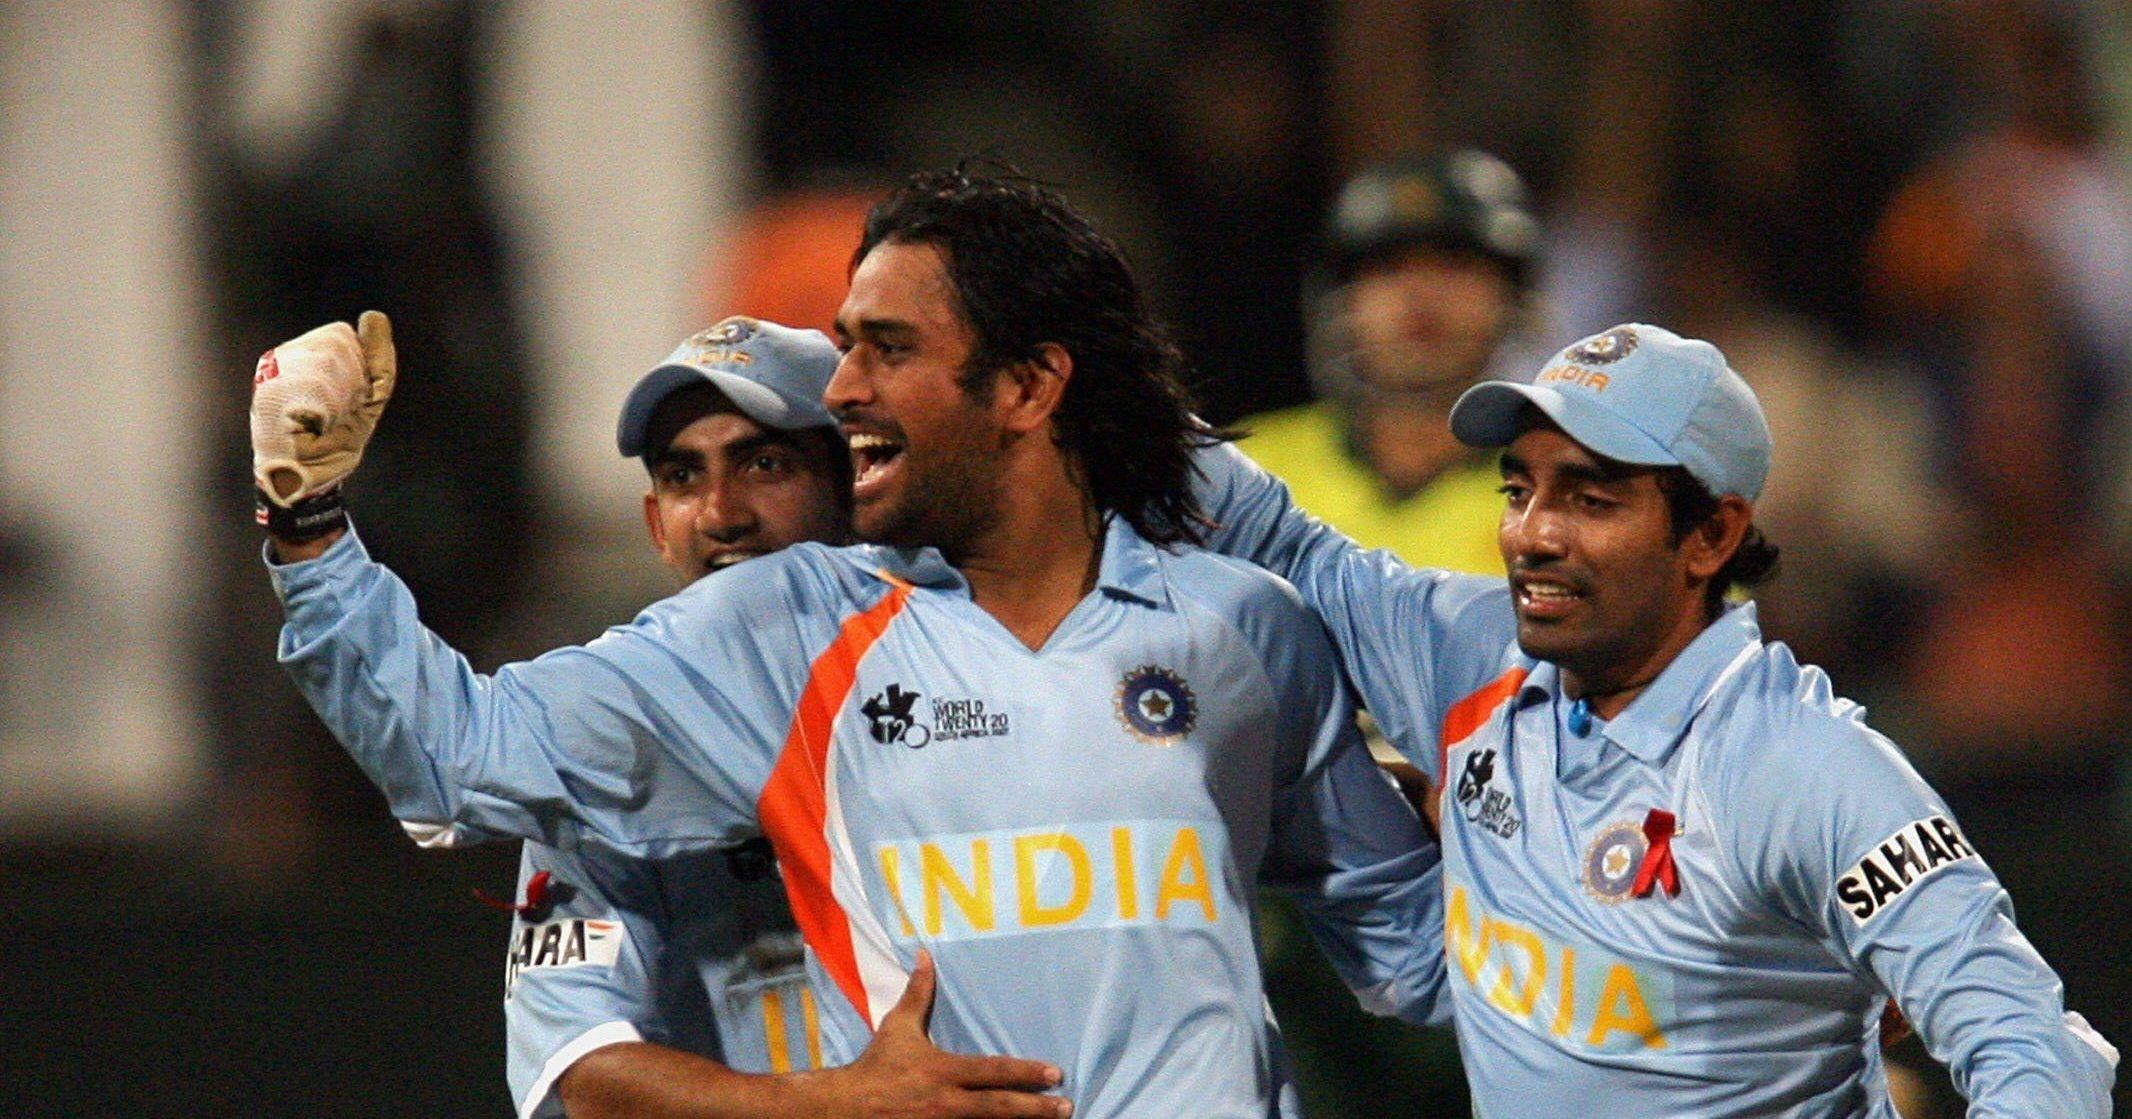 Did You Know MS Dhoni Led India To The 2007 World T20 Title Without A Coach?